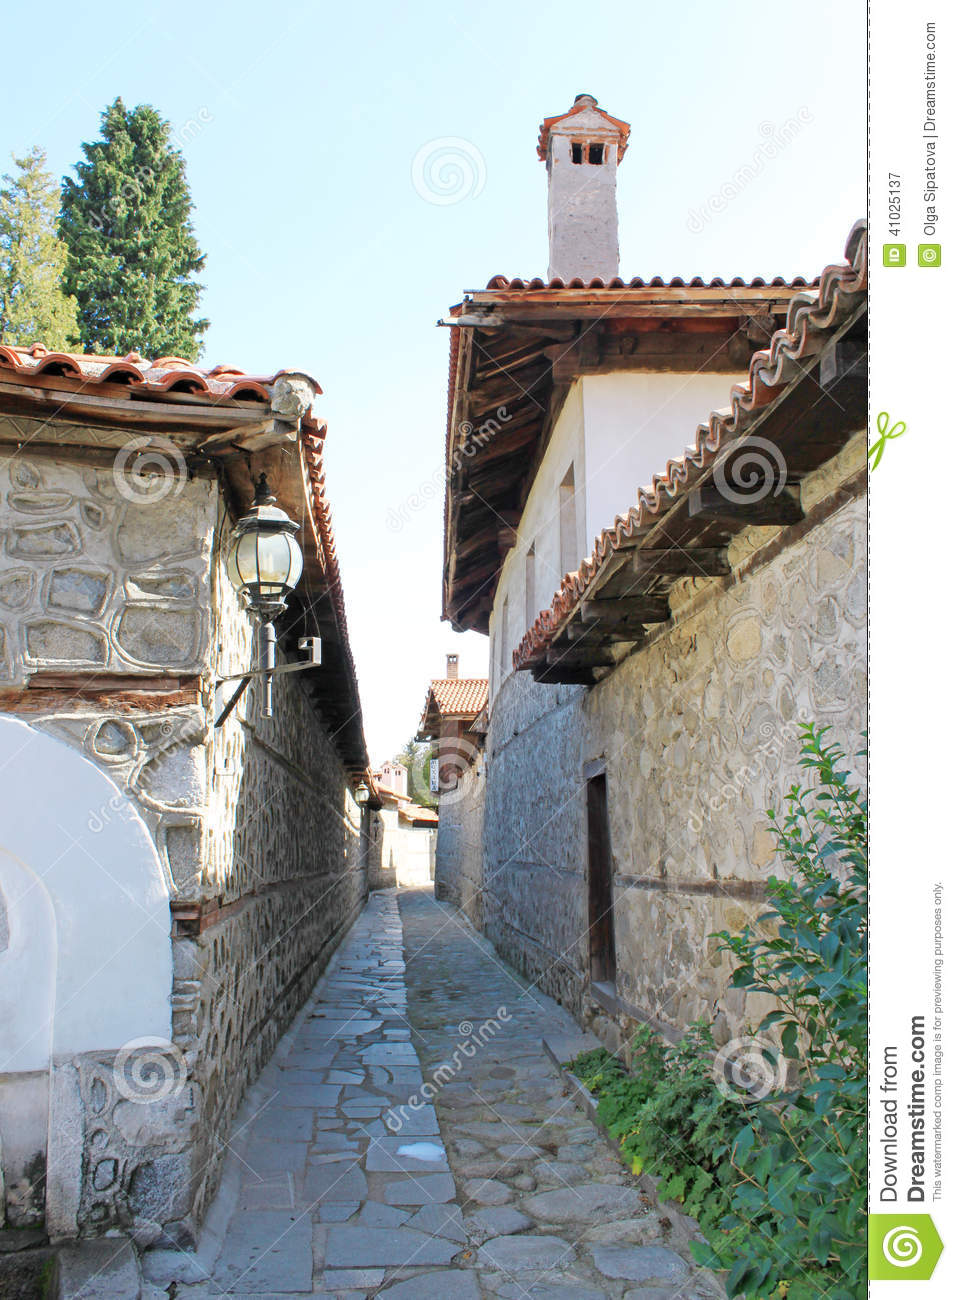 Paved Street in the Old Town of Bansko